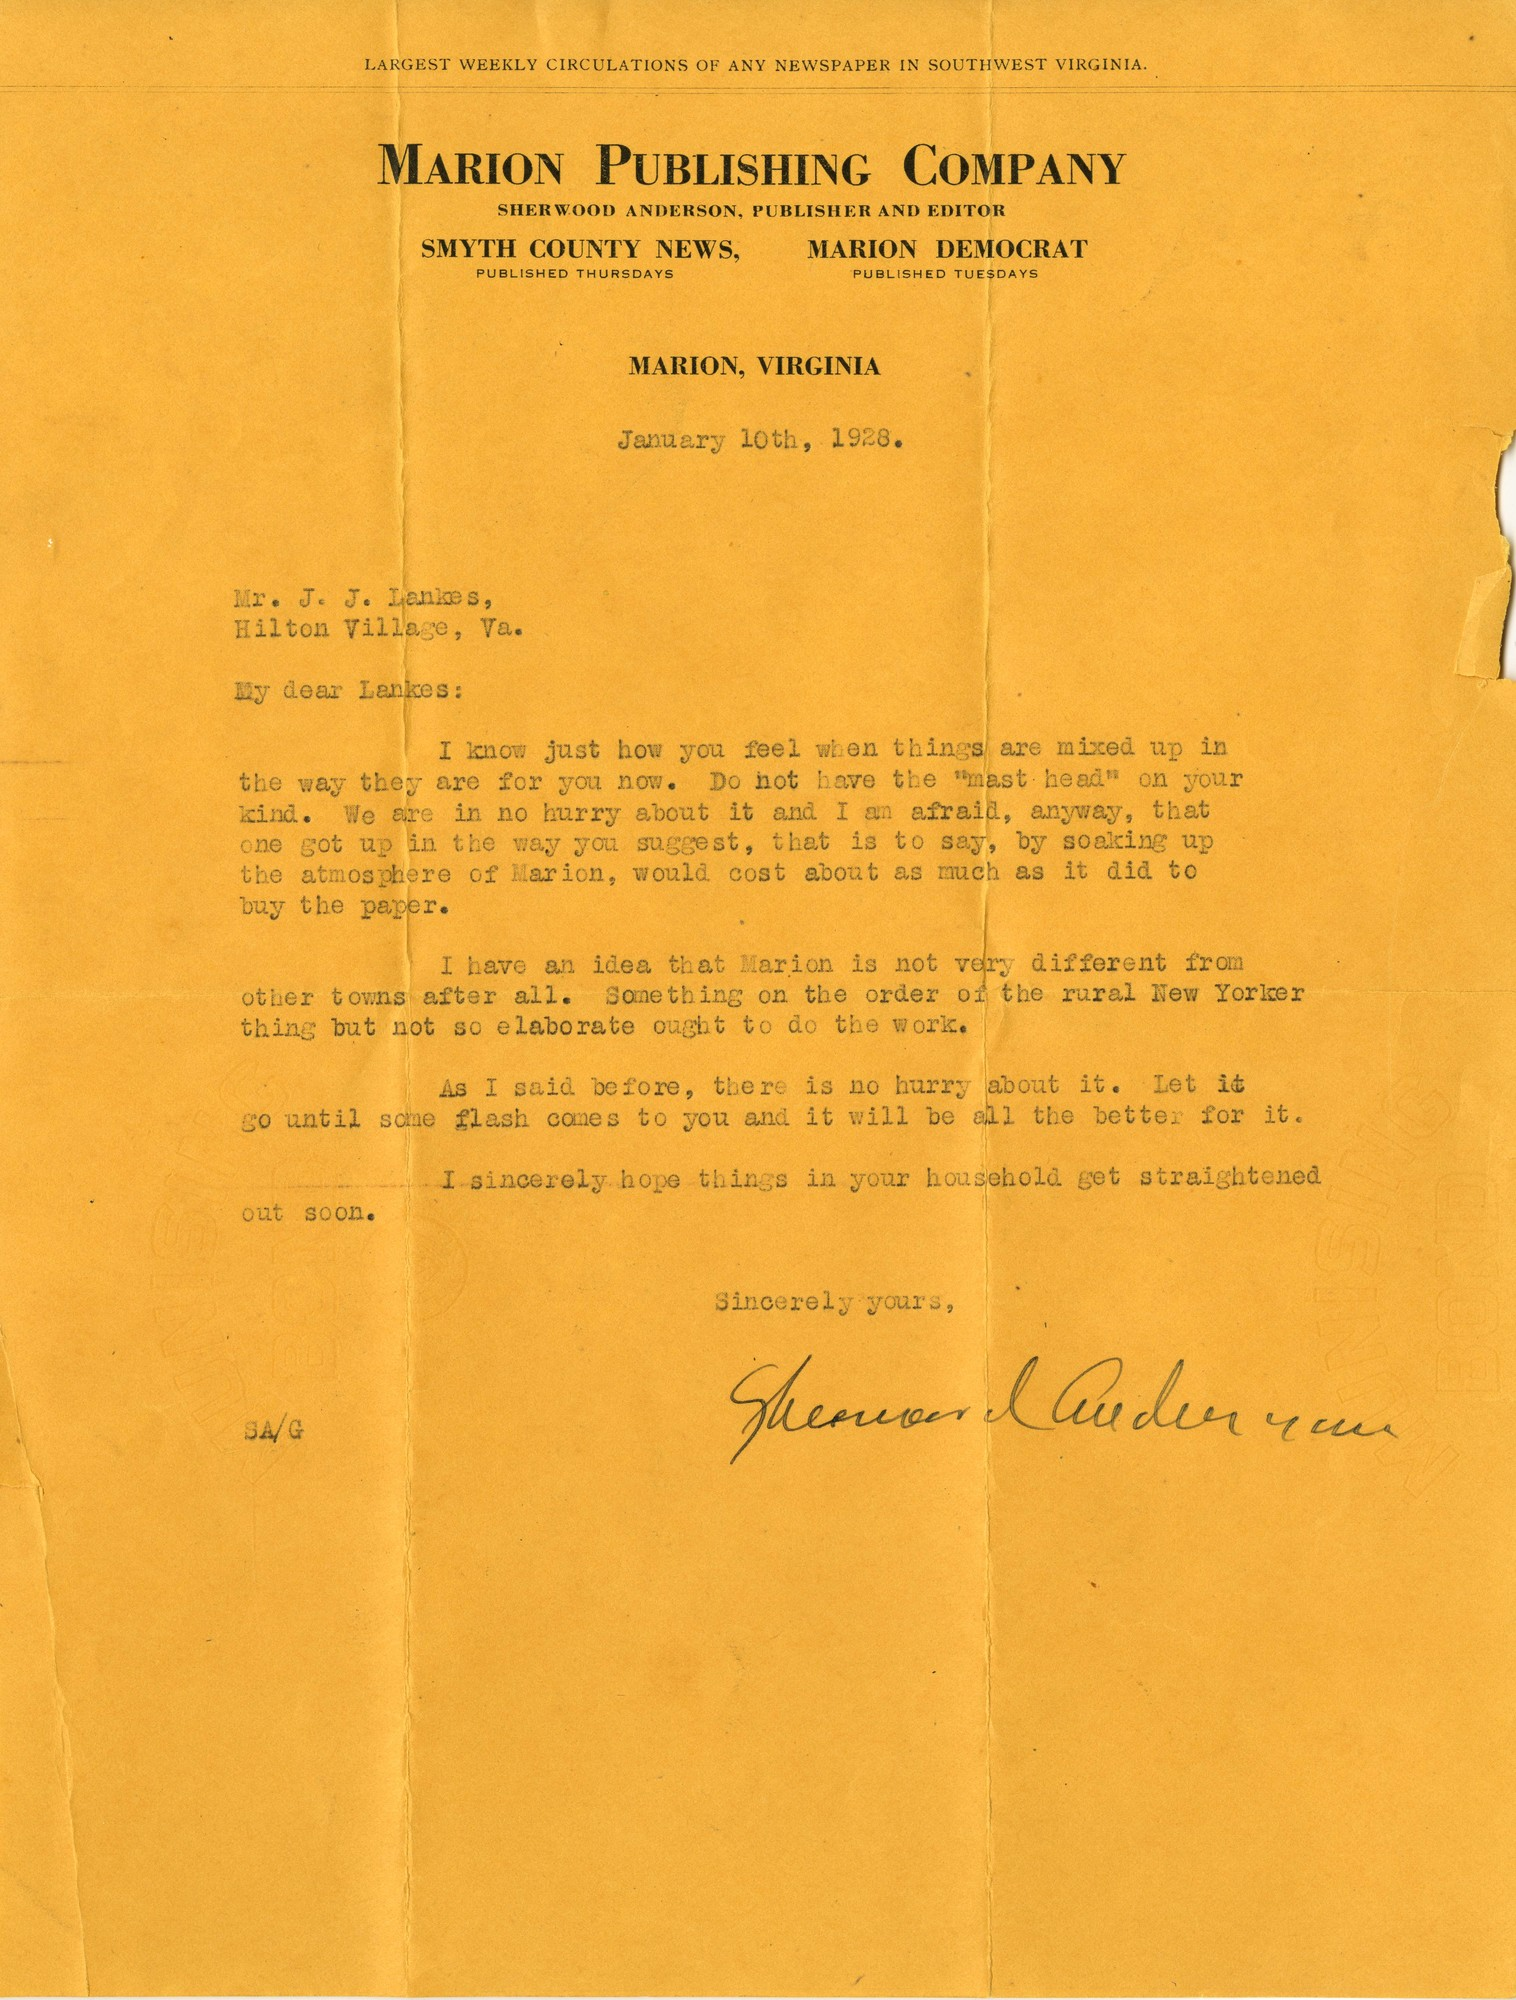 Letter, Sherwood Anderson to J. J. Lankes, January 10, 1928 (Ms2015-020)